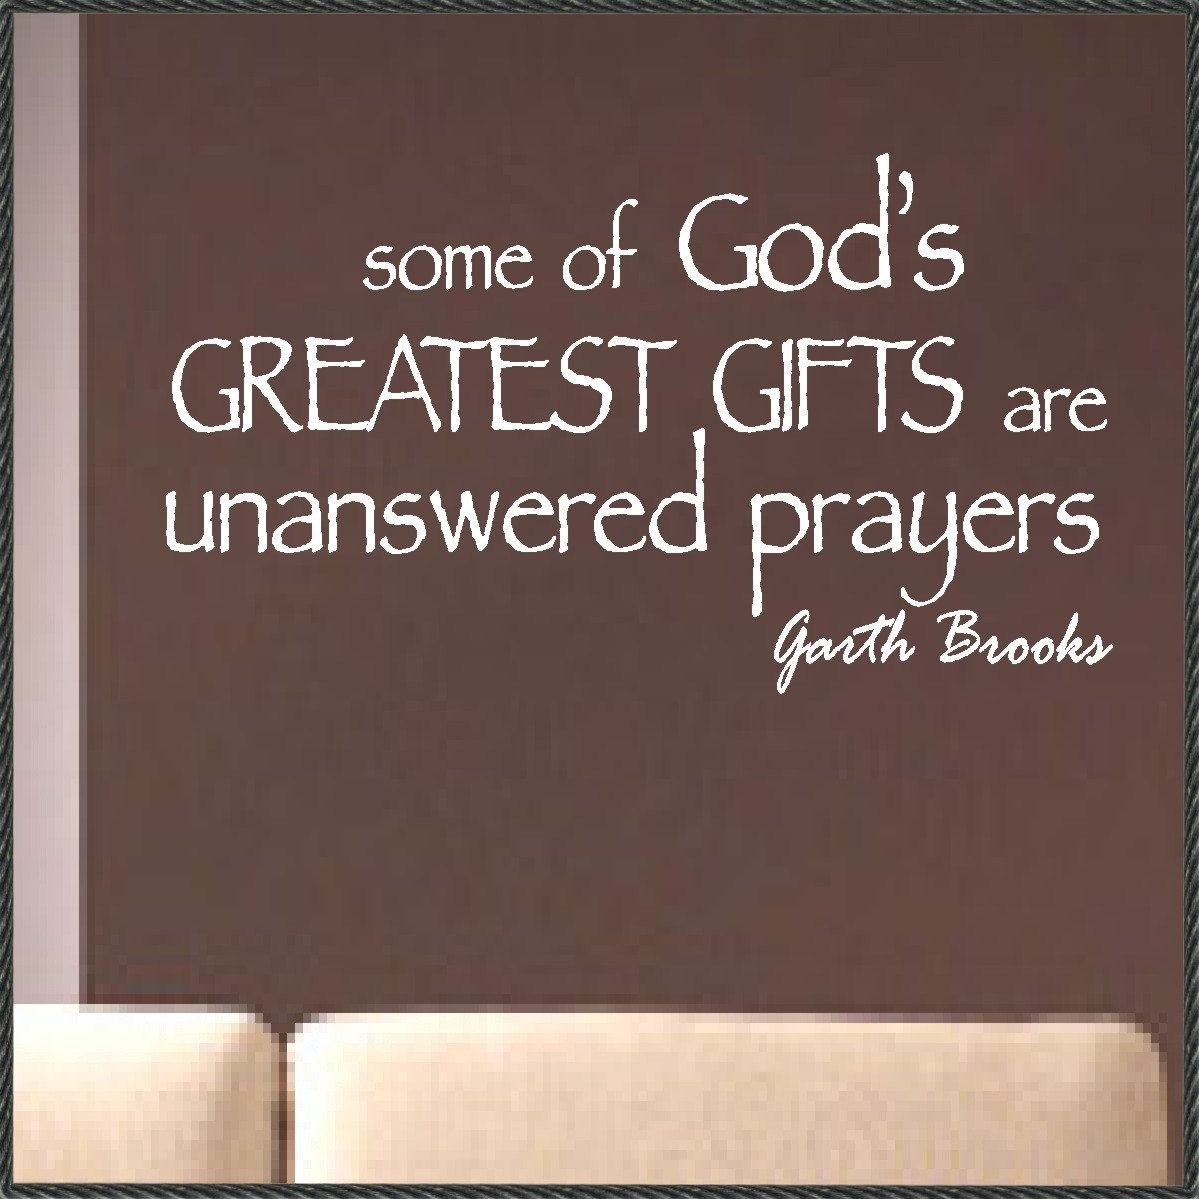 Citaten Geloof : Beste ideeën over unanswered prayers op pinterest